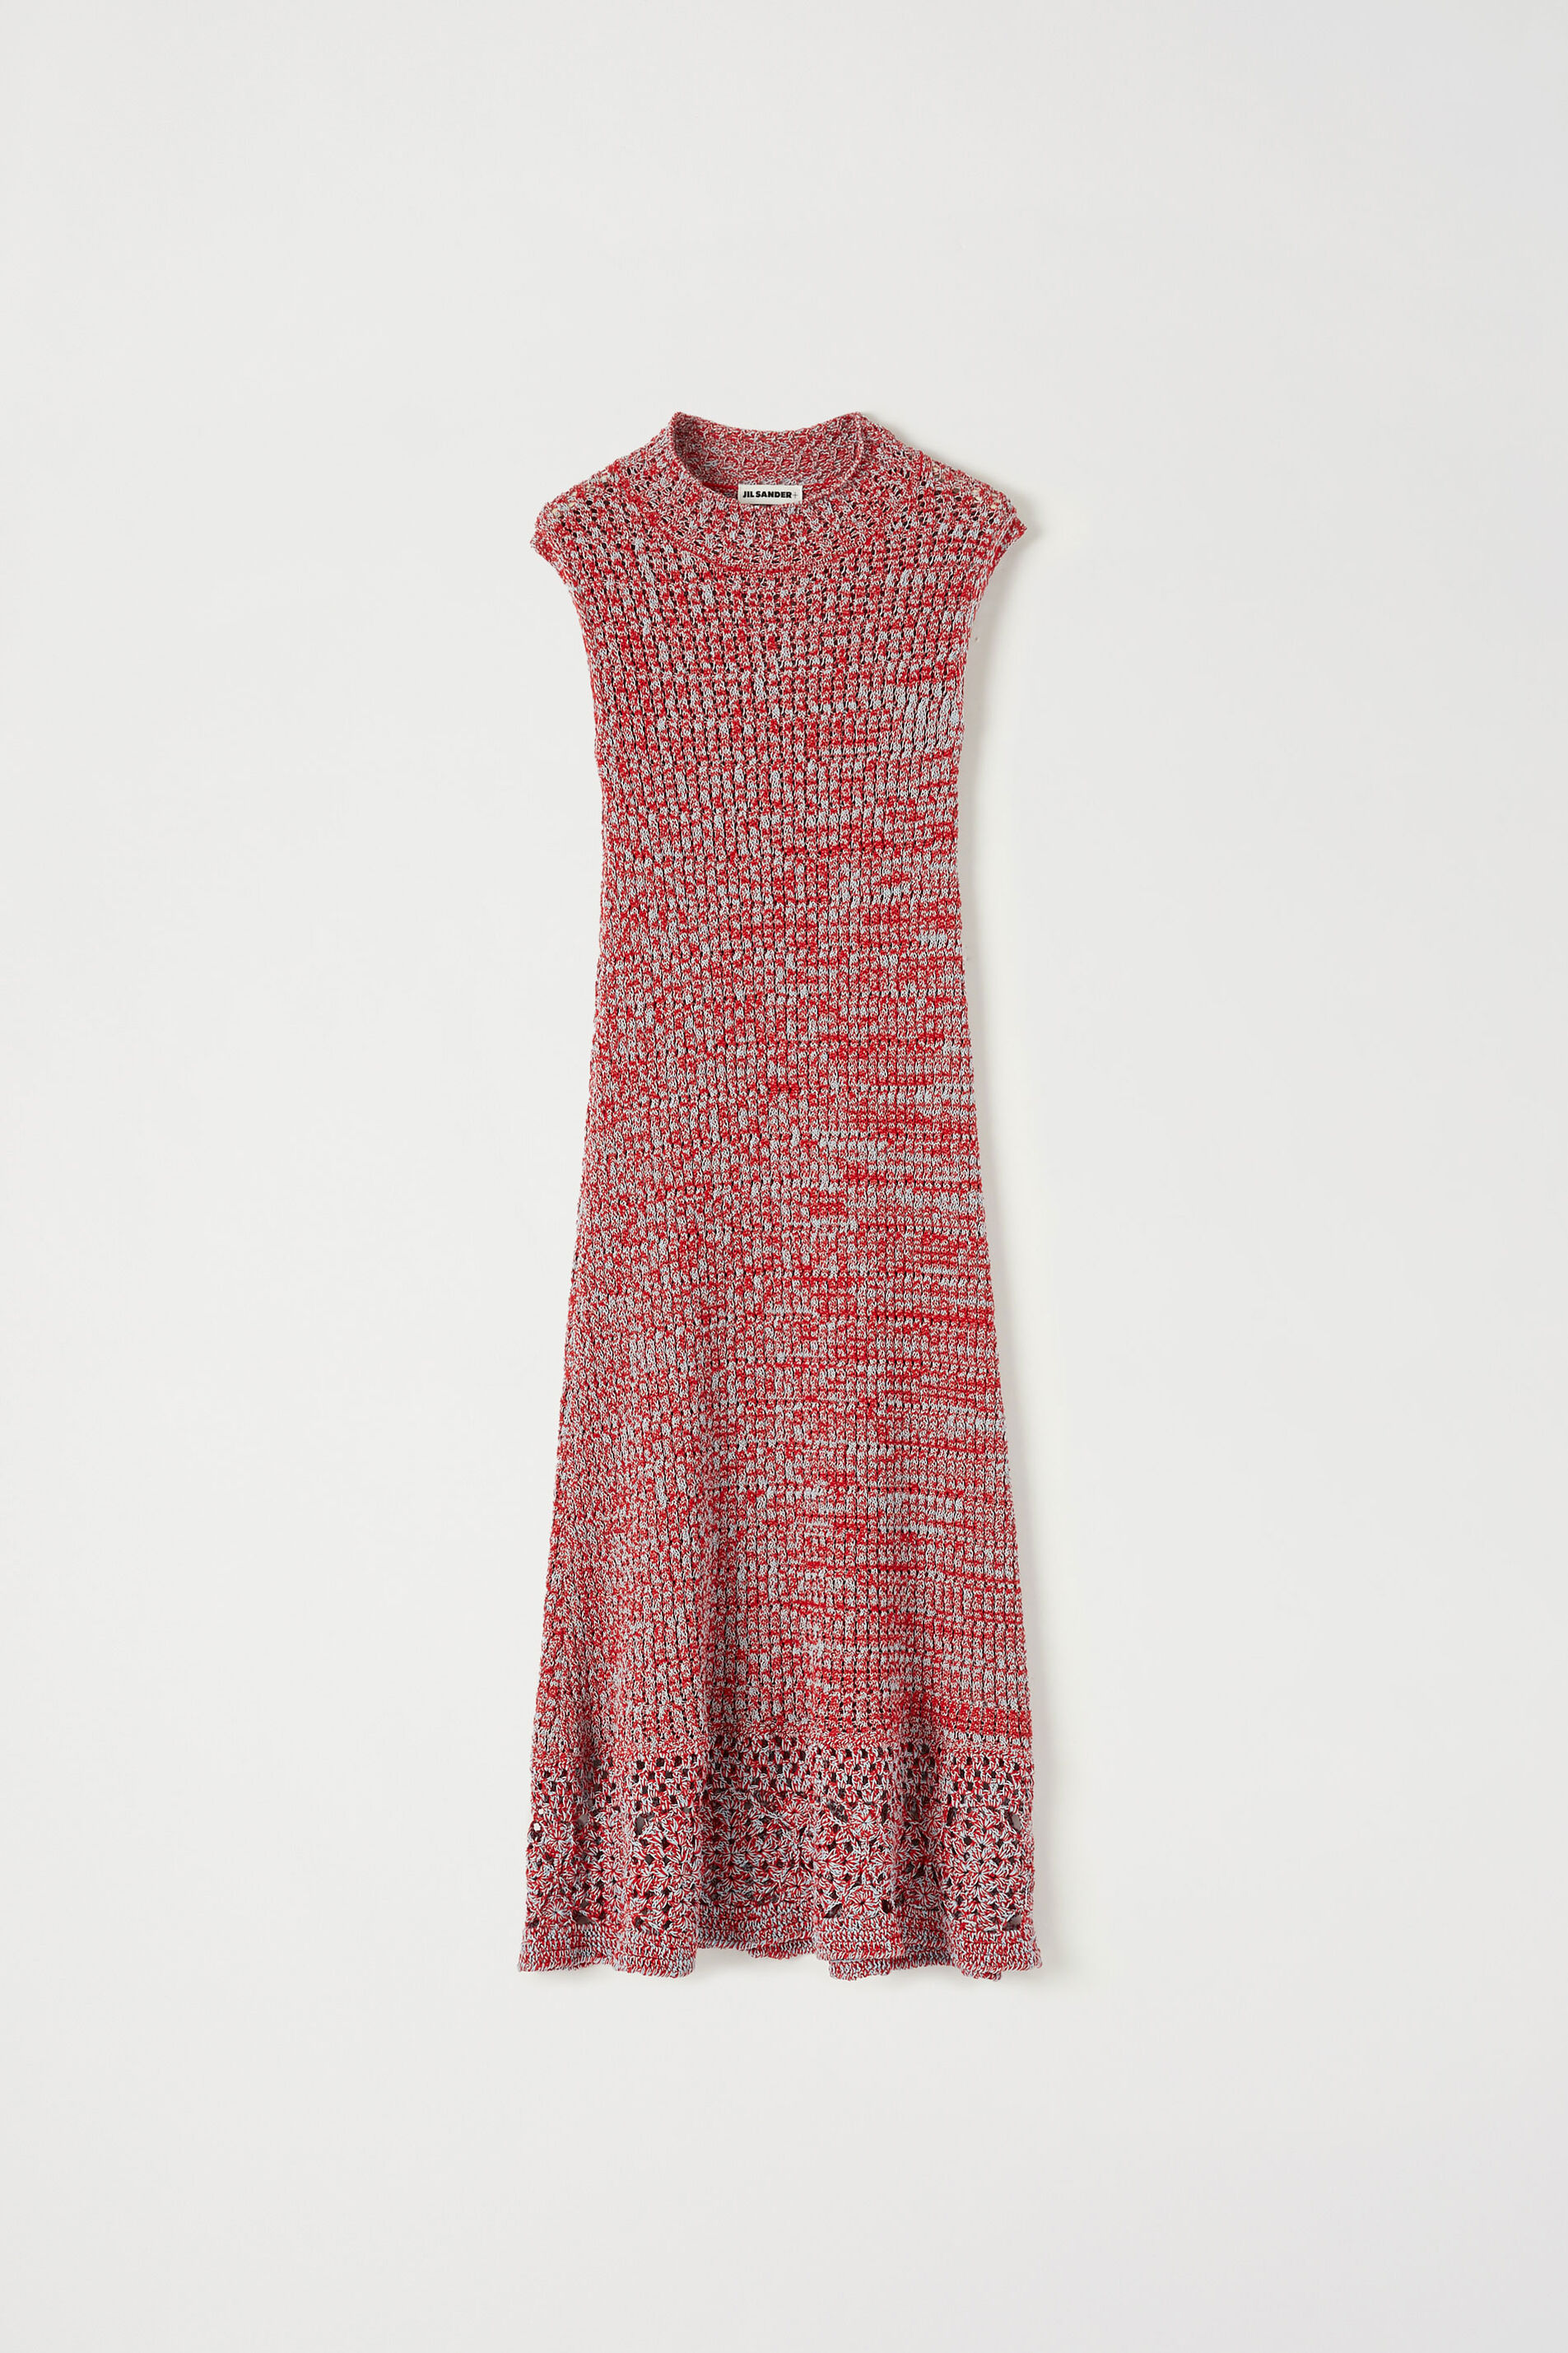 Knit Dress, red, large